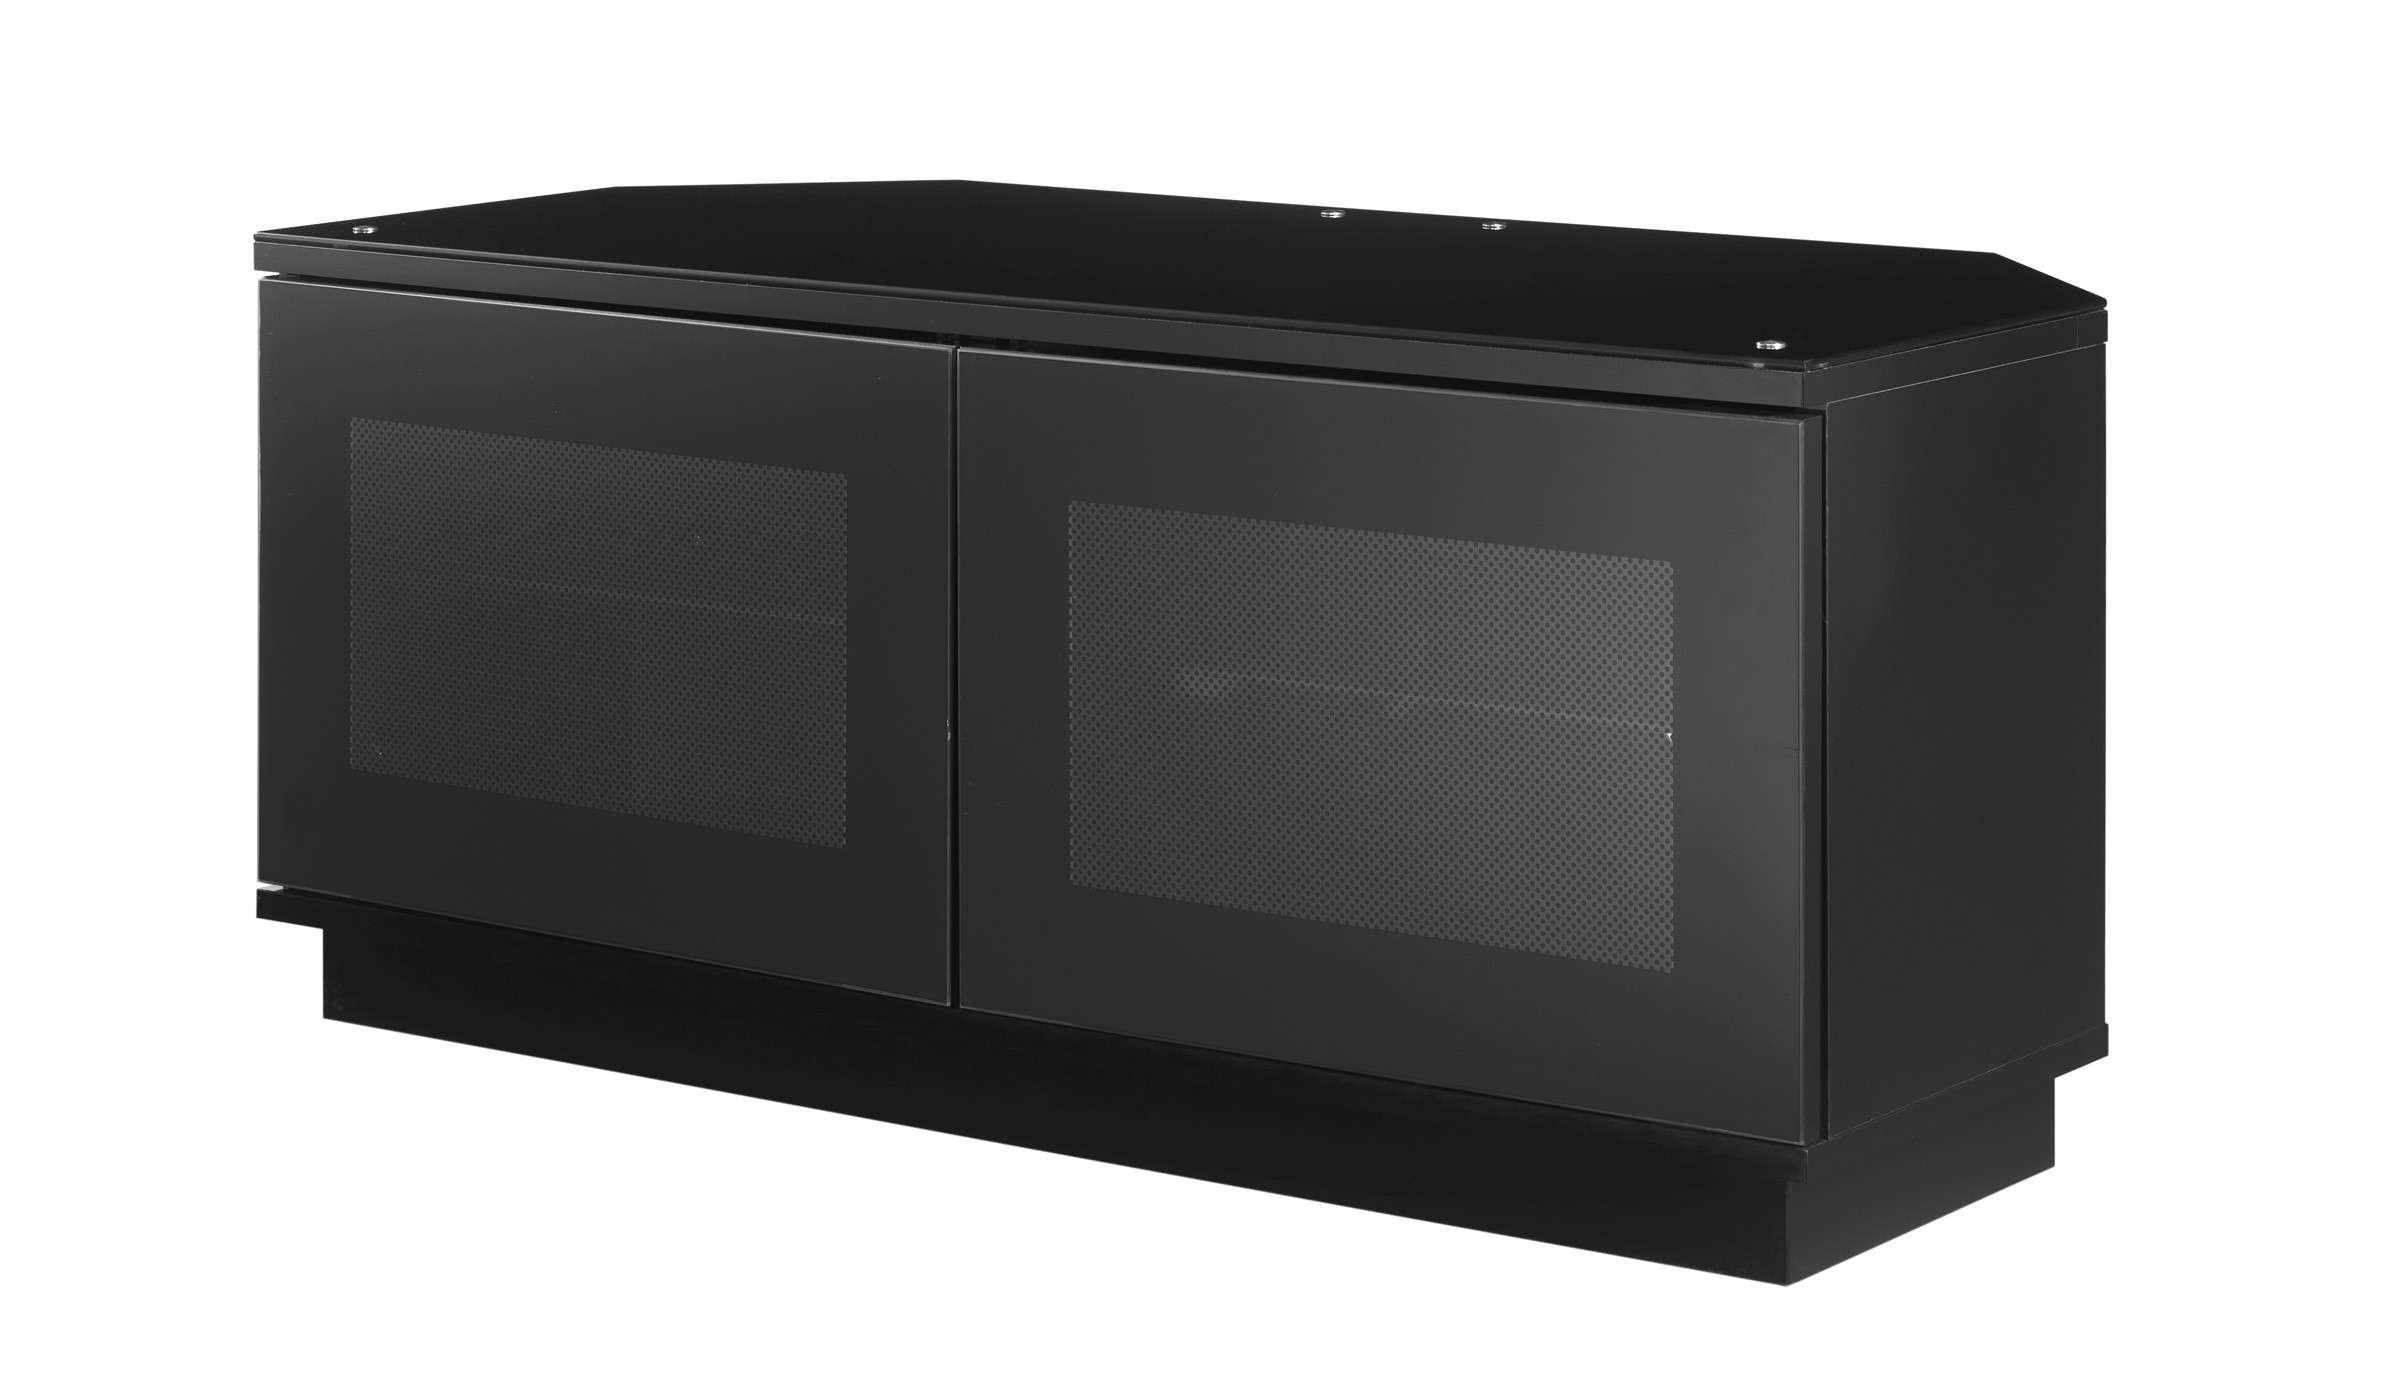 Small Black Tv Stand Cabinet With Door For Corner – Decofurnish Throughout Black Wood Corner Tv Stands (View 7 of 15)